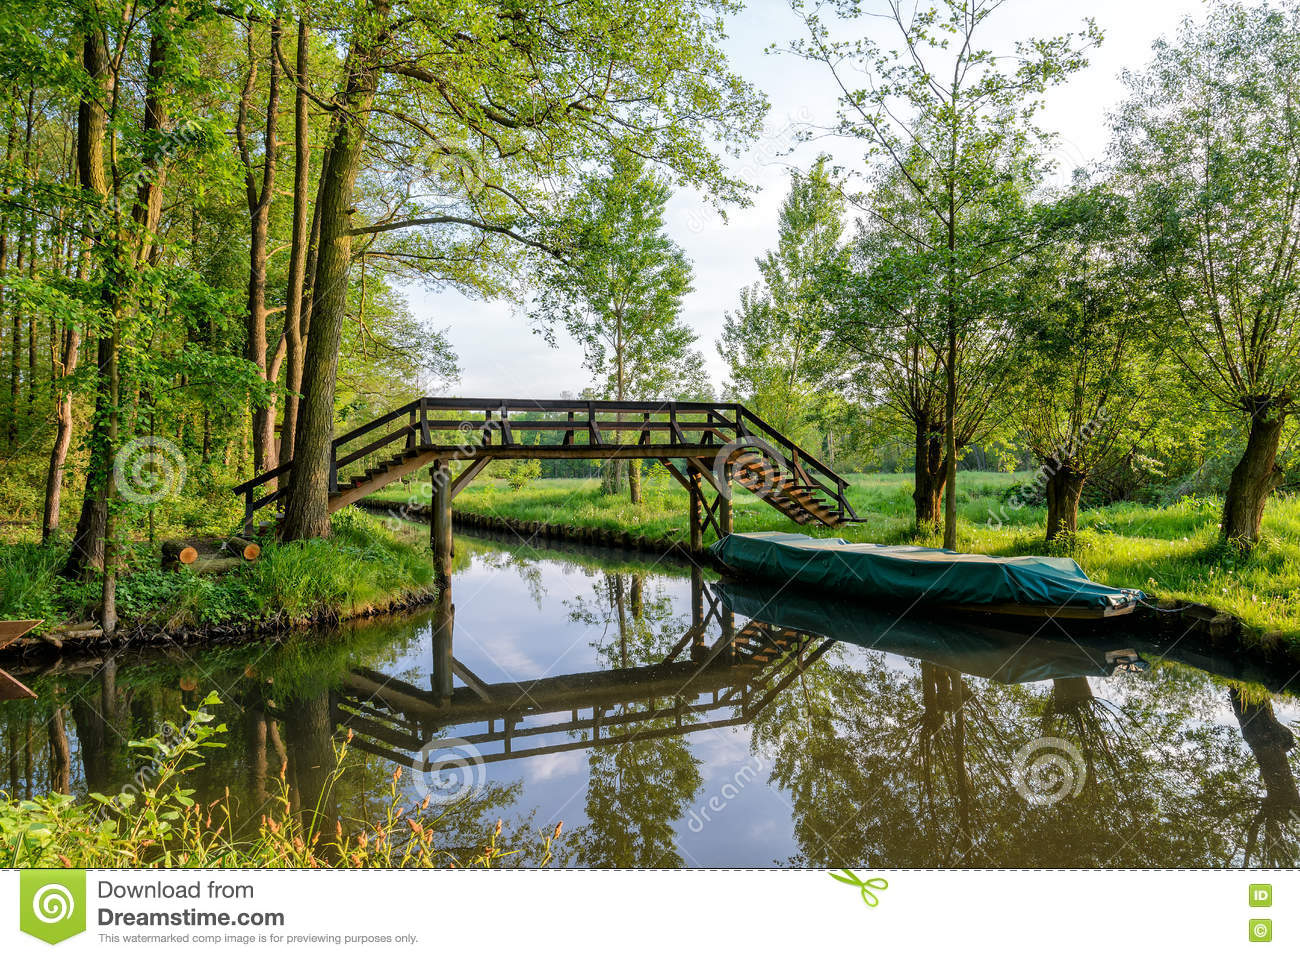 Spreewald Royalty-Free Stock Photo | CartoonDealer.com ...